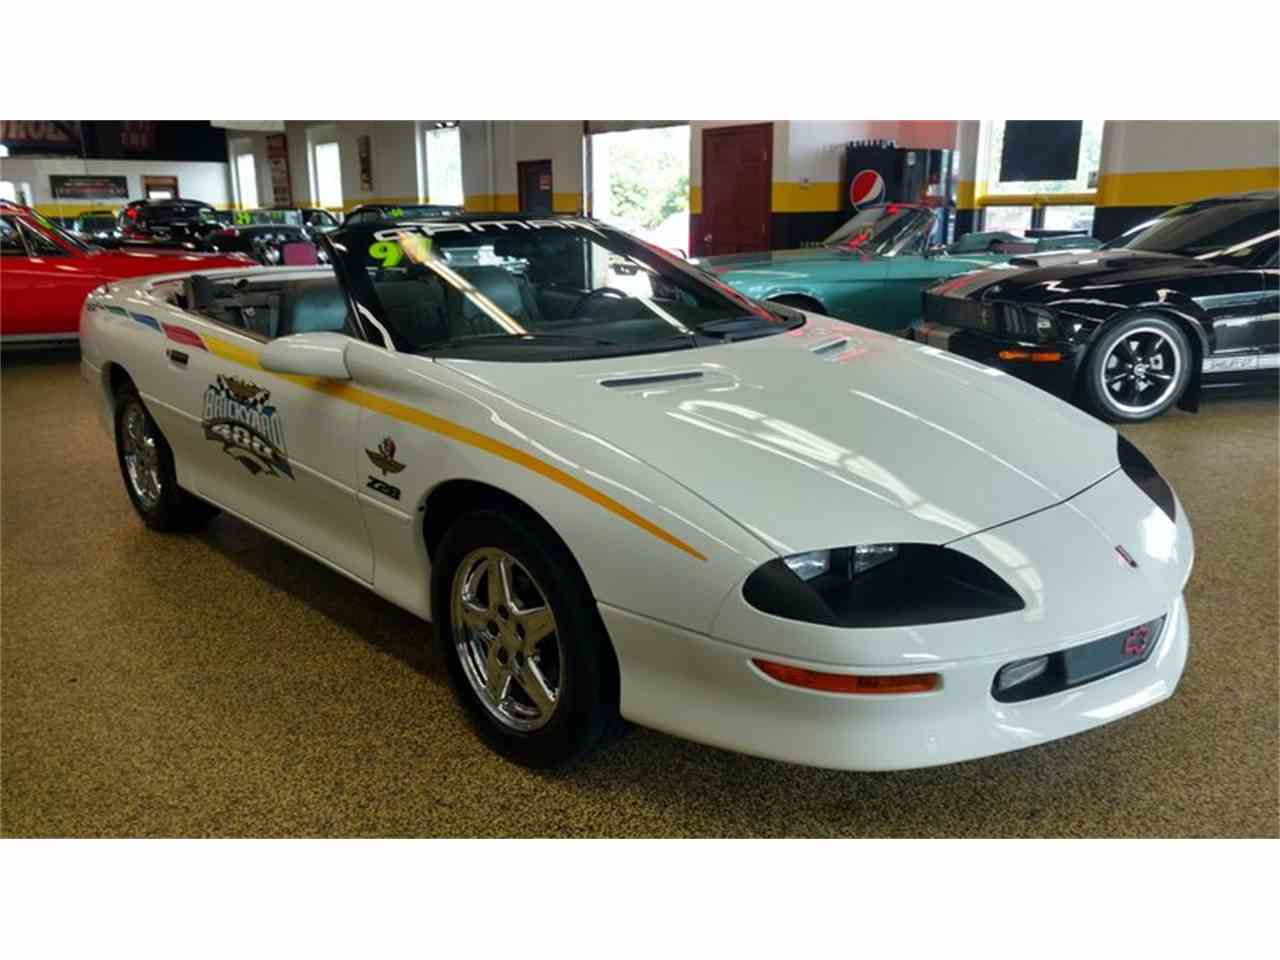 Large Picture of '97 Camaro Z28 Convertible Brickyard Pace Car - LV2N